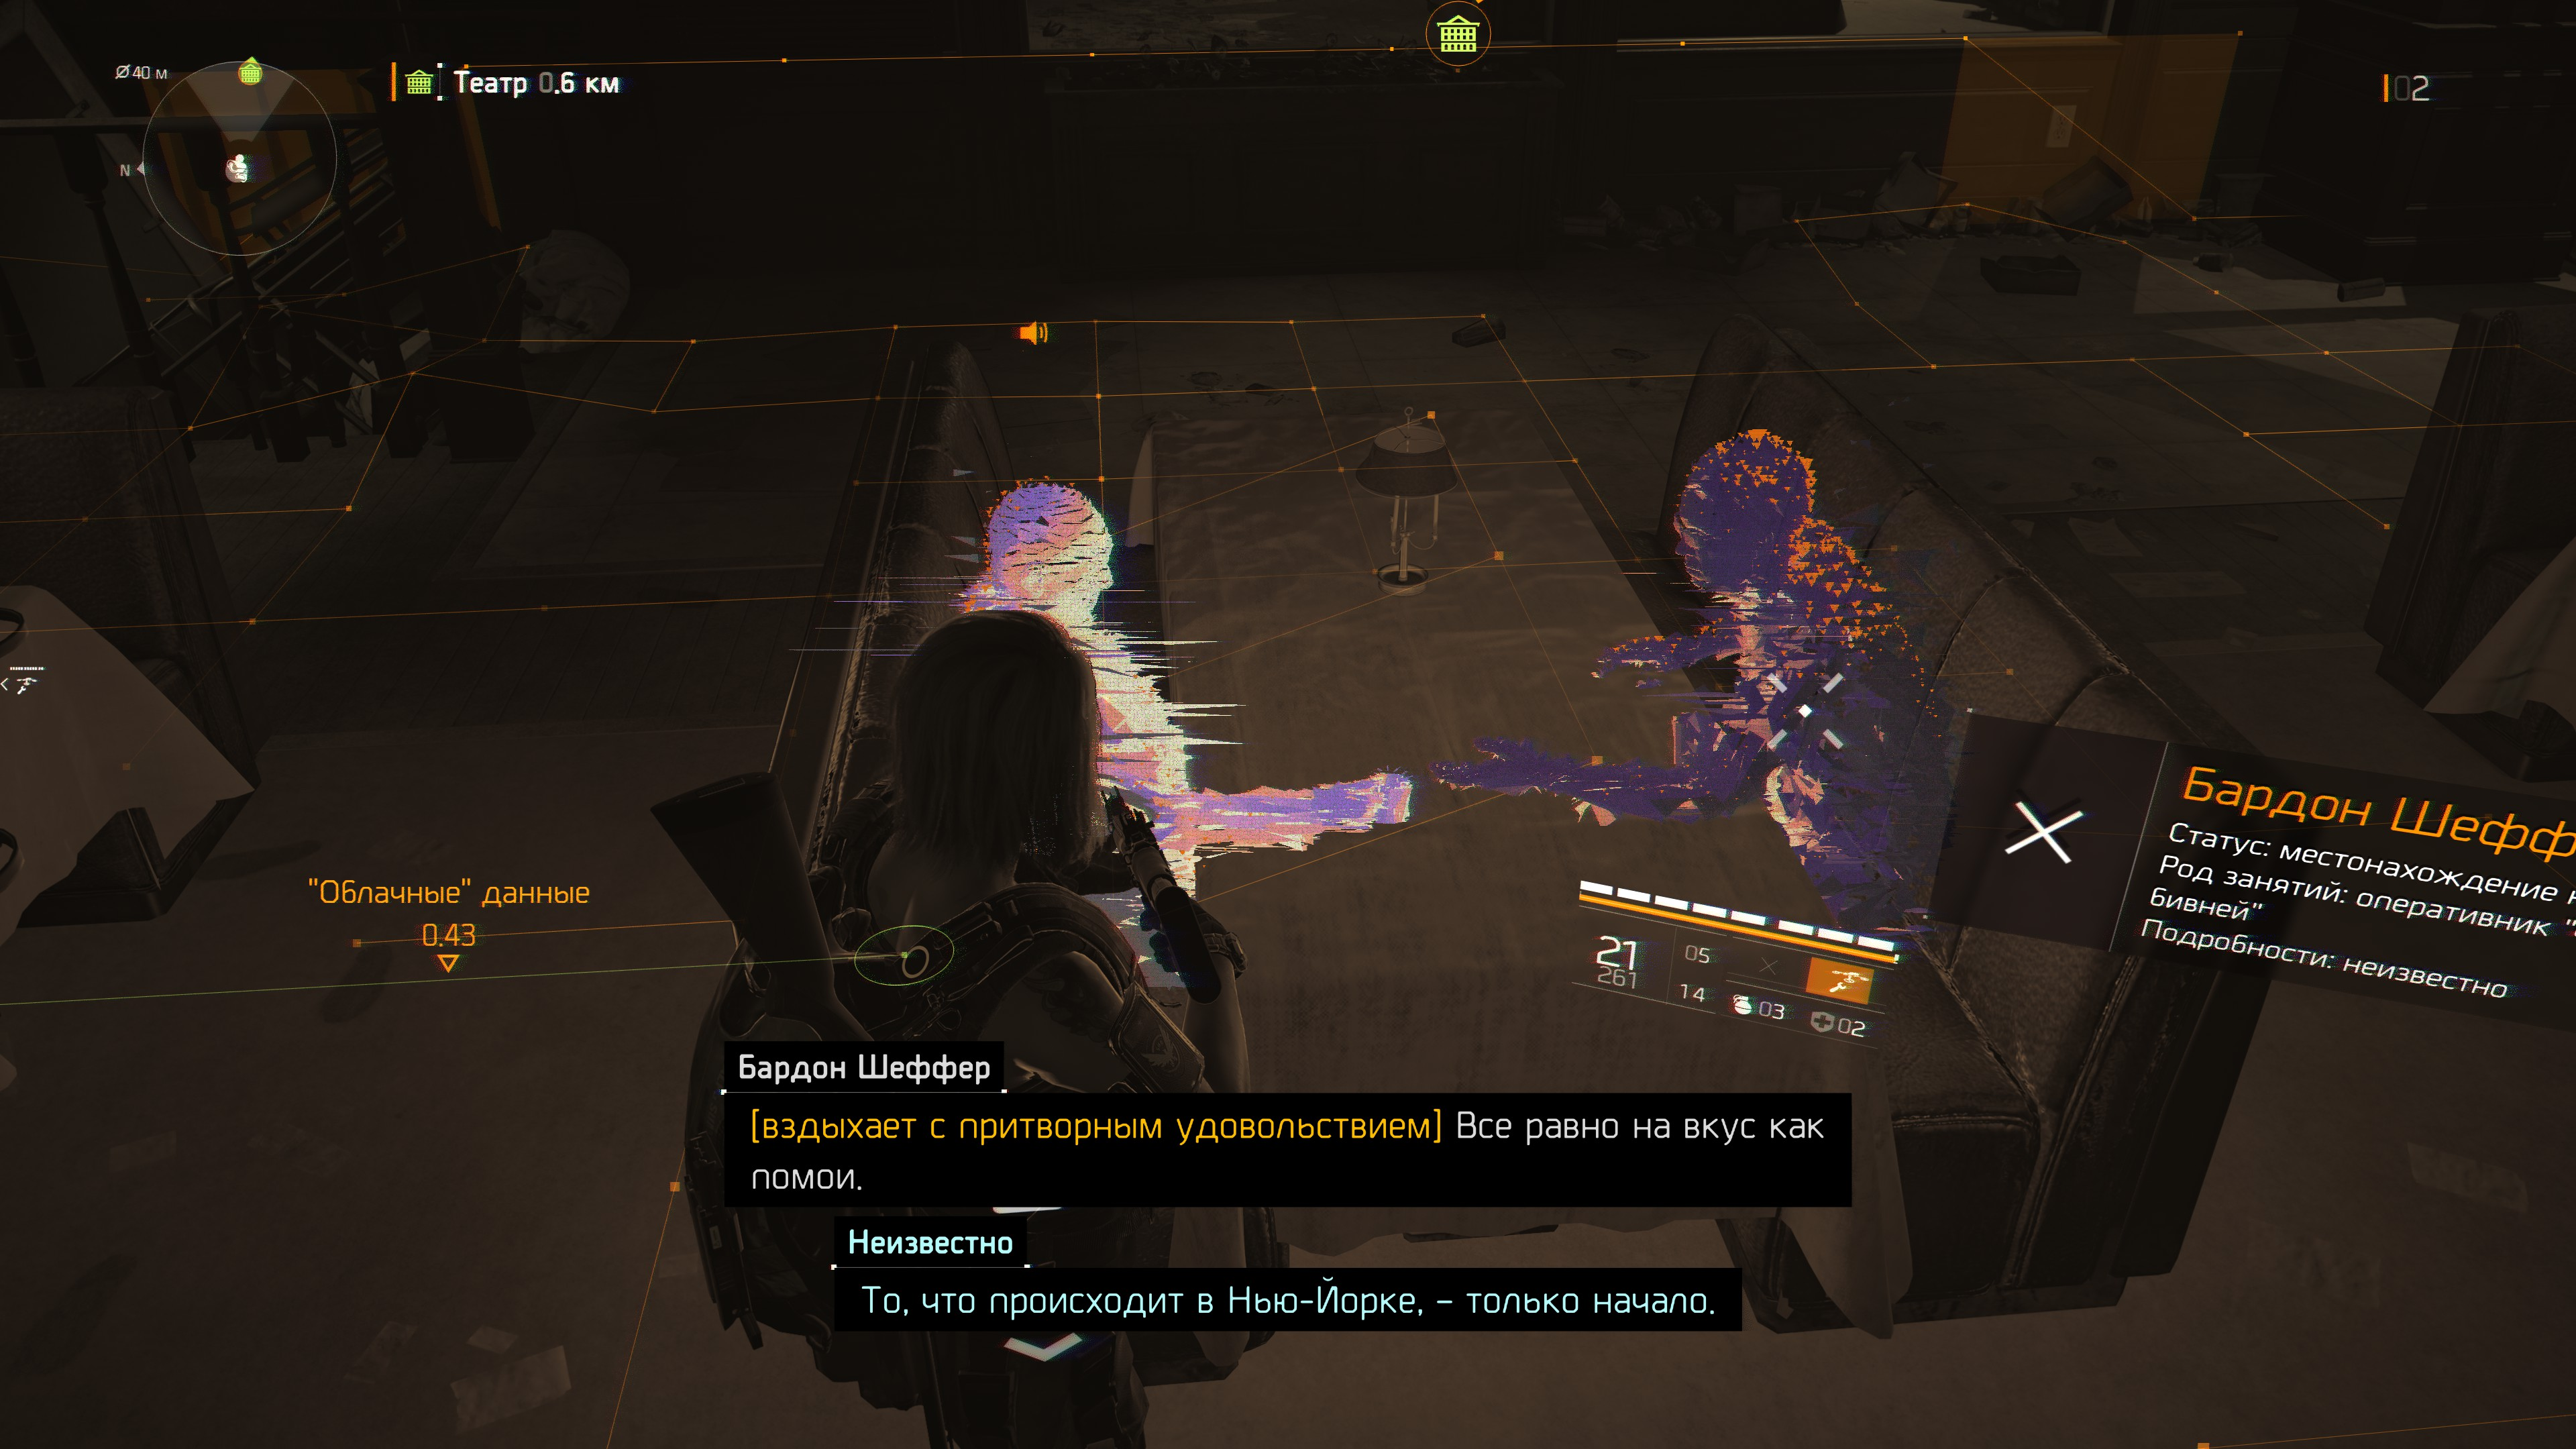 Tom Clancy's The Division® 22020-3-1-6-43-59.jpg - Tom Clancy's The Division 2